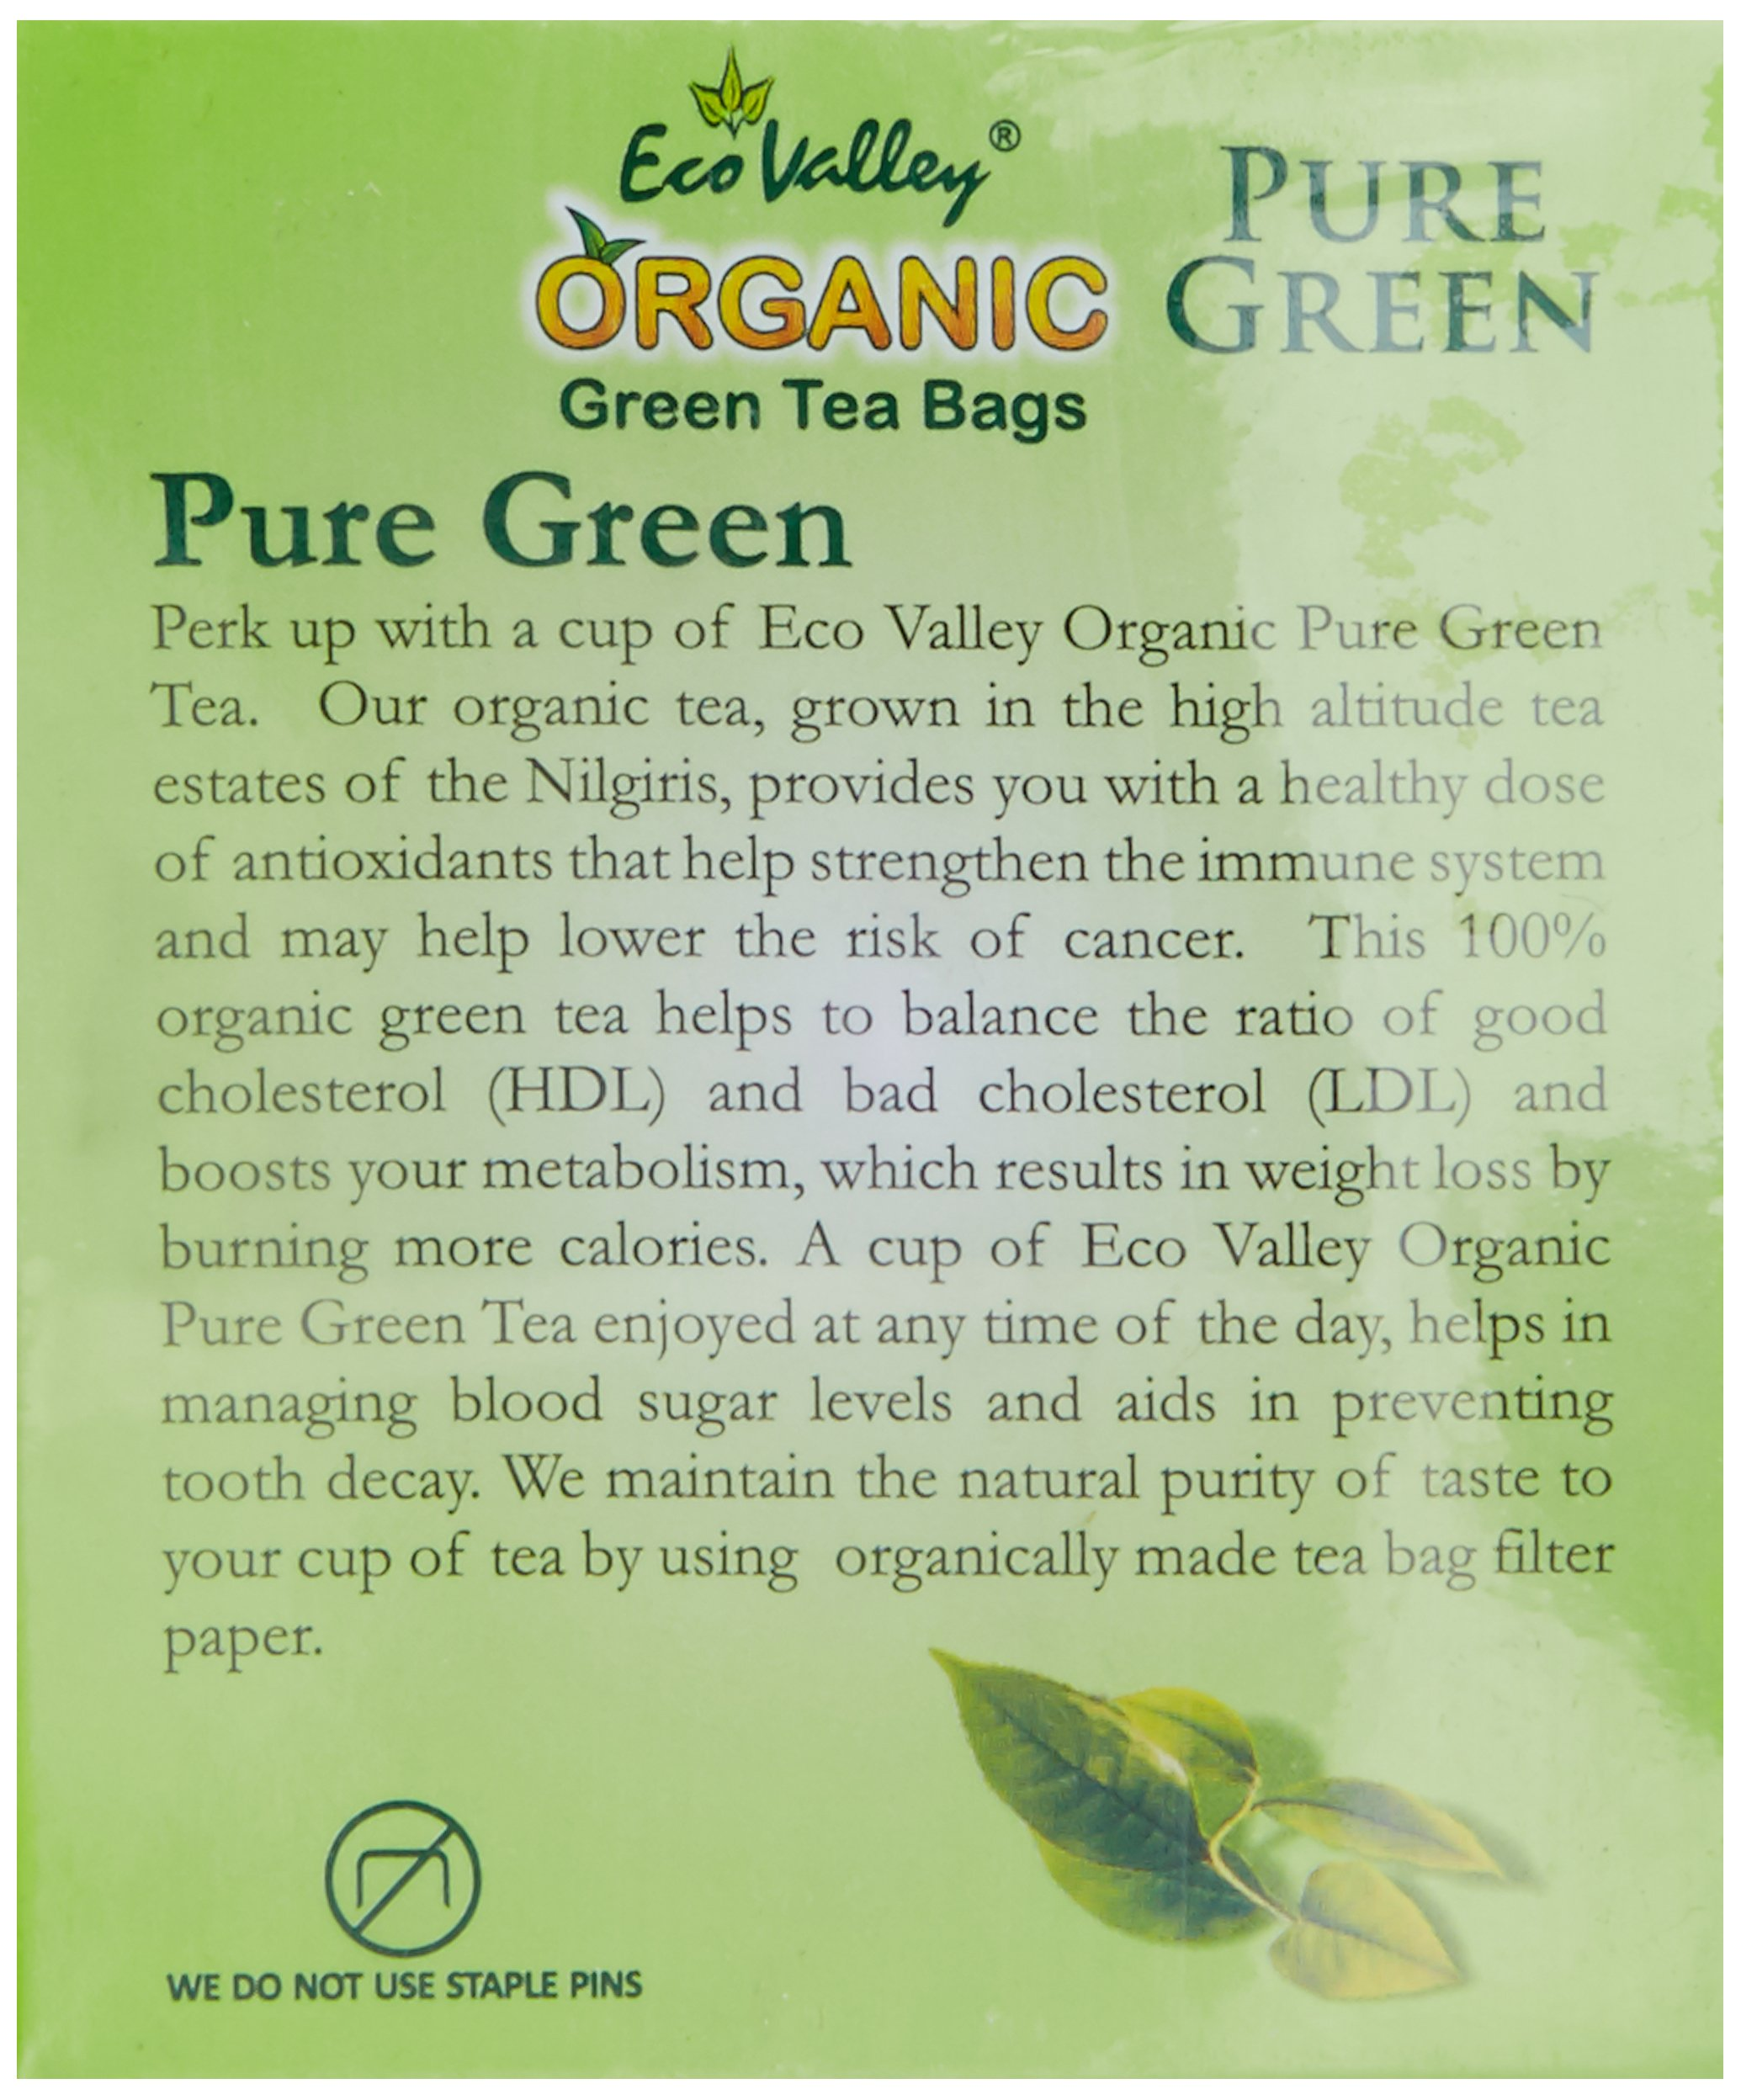 Eco Valley Organic Green Tea, Pure, 25 Tea Bags (Free 5 Tea Bags Inside) by Ecovalley (Tin) (Image #4)